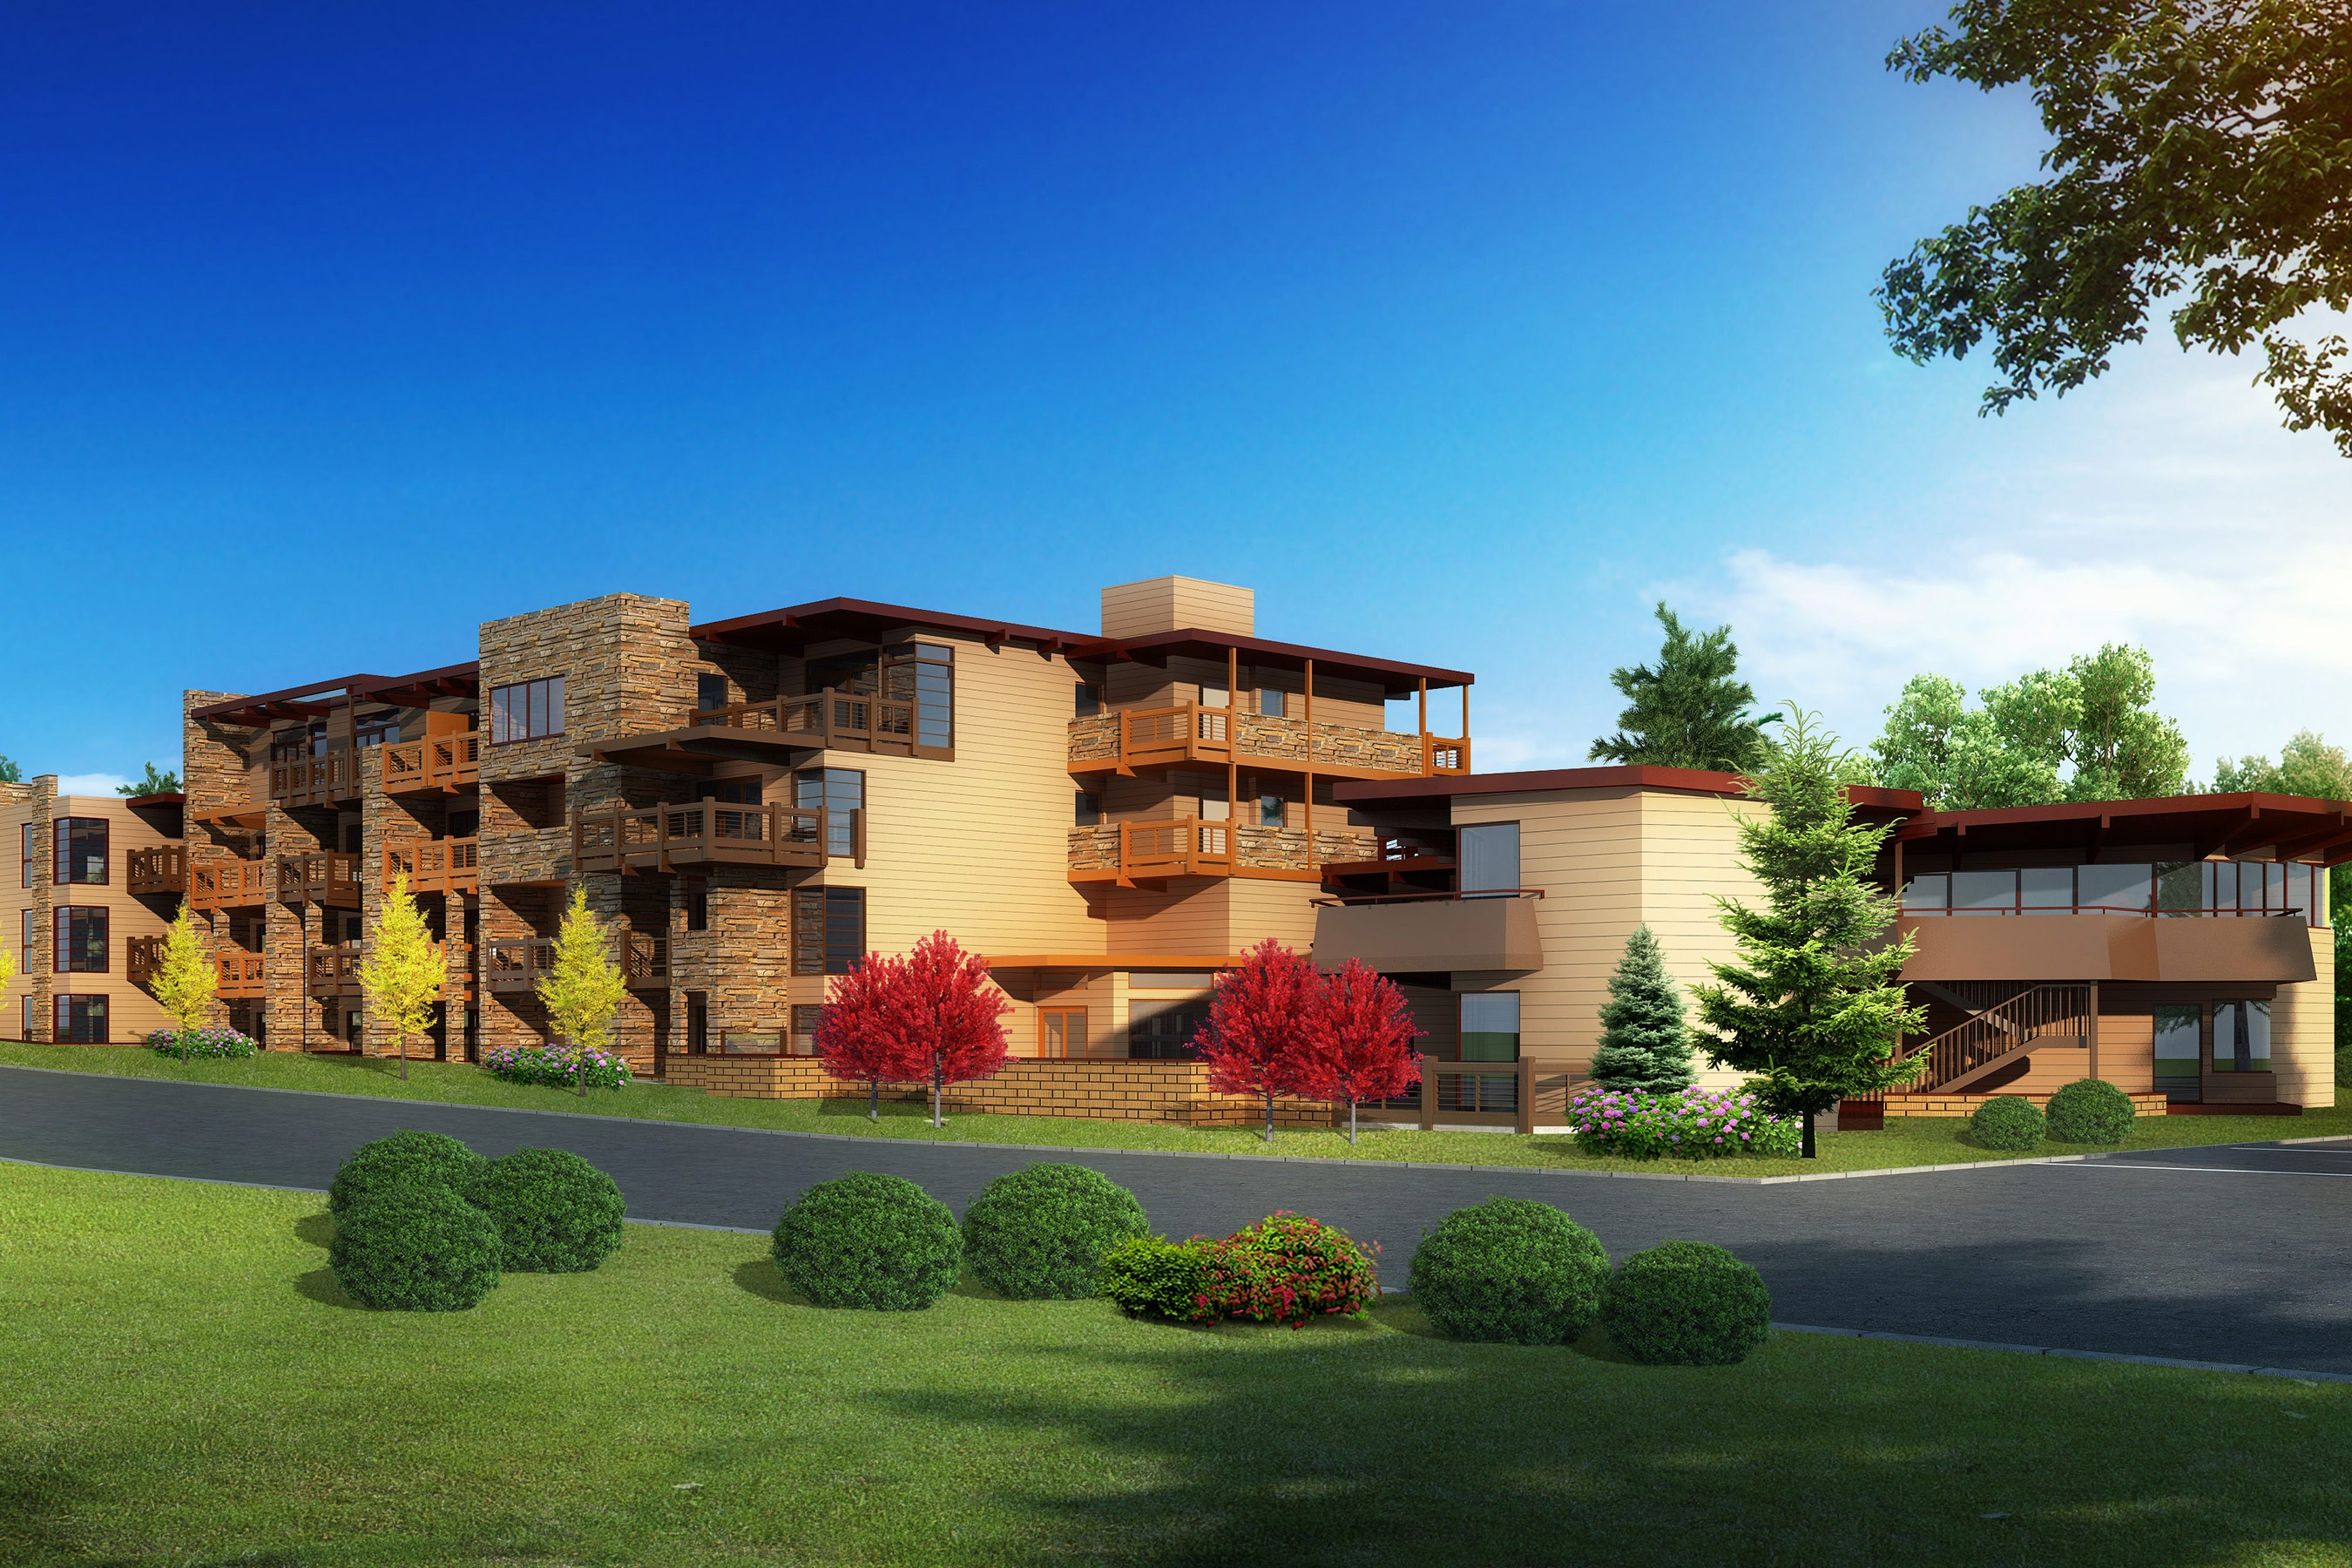 Condominium for Sale at Boomerang Lodge 500 W. Hopkins Avenue Unit 109 Aspen, Colorado, 81611 United States